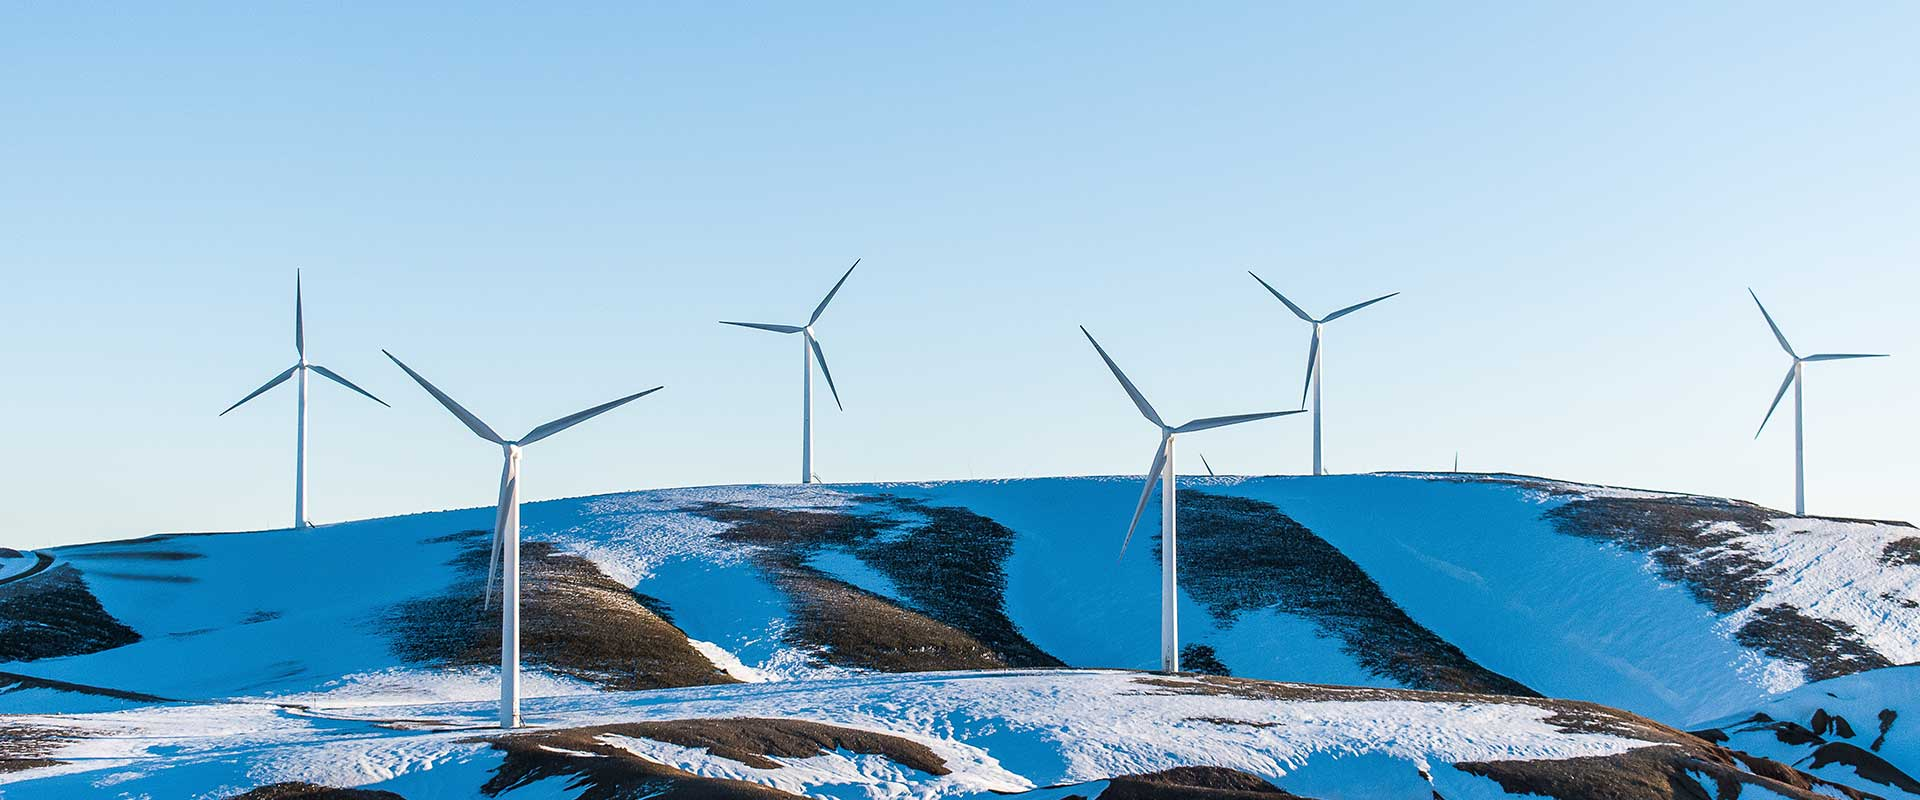 Banner Image for Physical Security for Renewable Energy Article Showing A Wind Farm